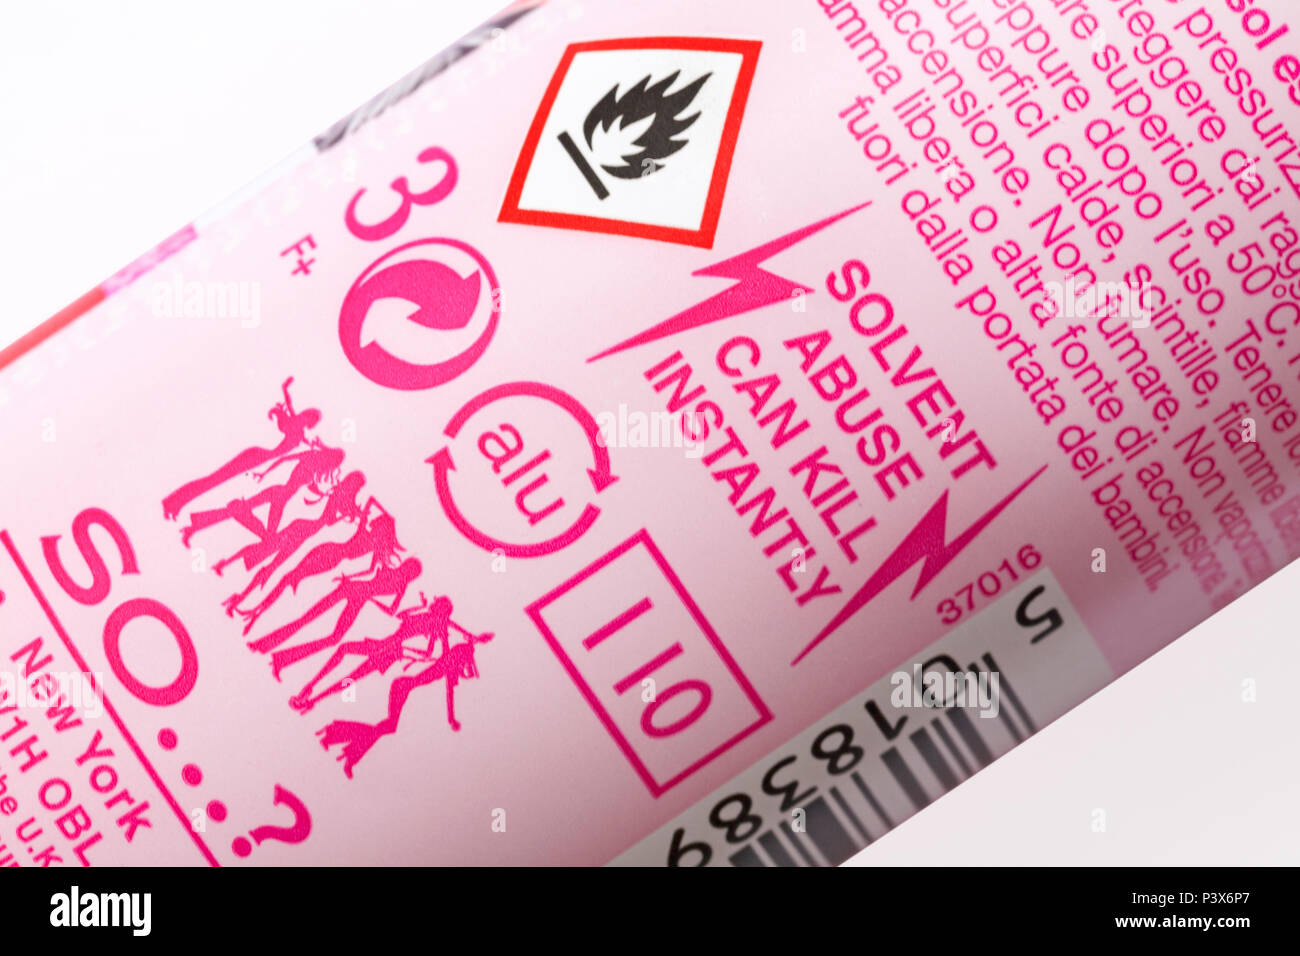 Solvent Abuse Can Kill Instantly And Flammable Symbol On Can Stock